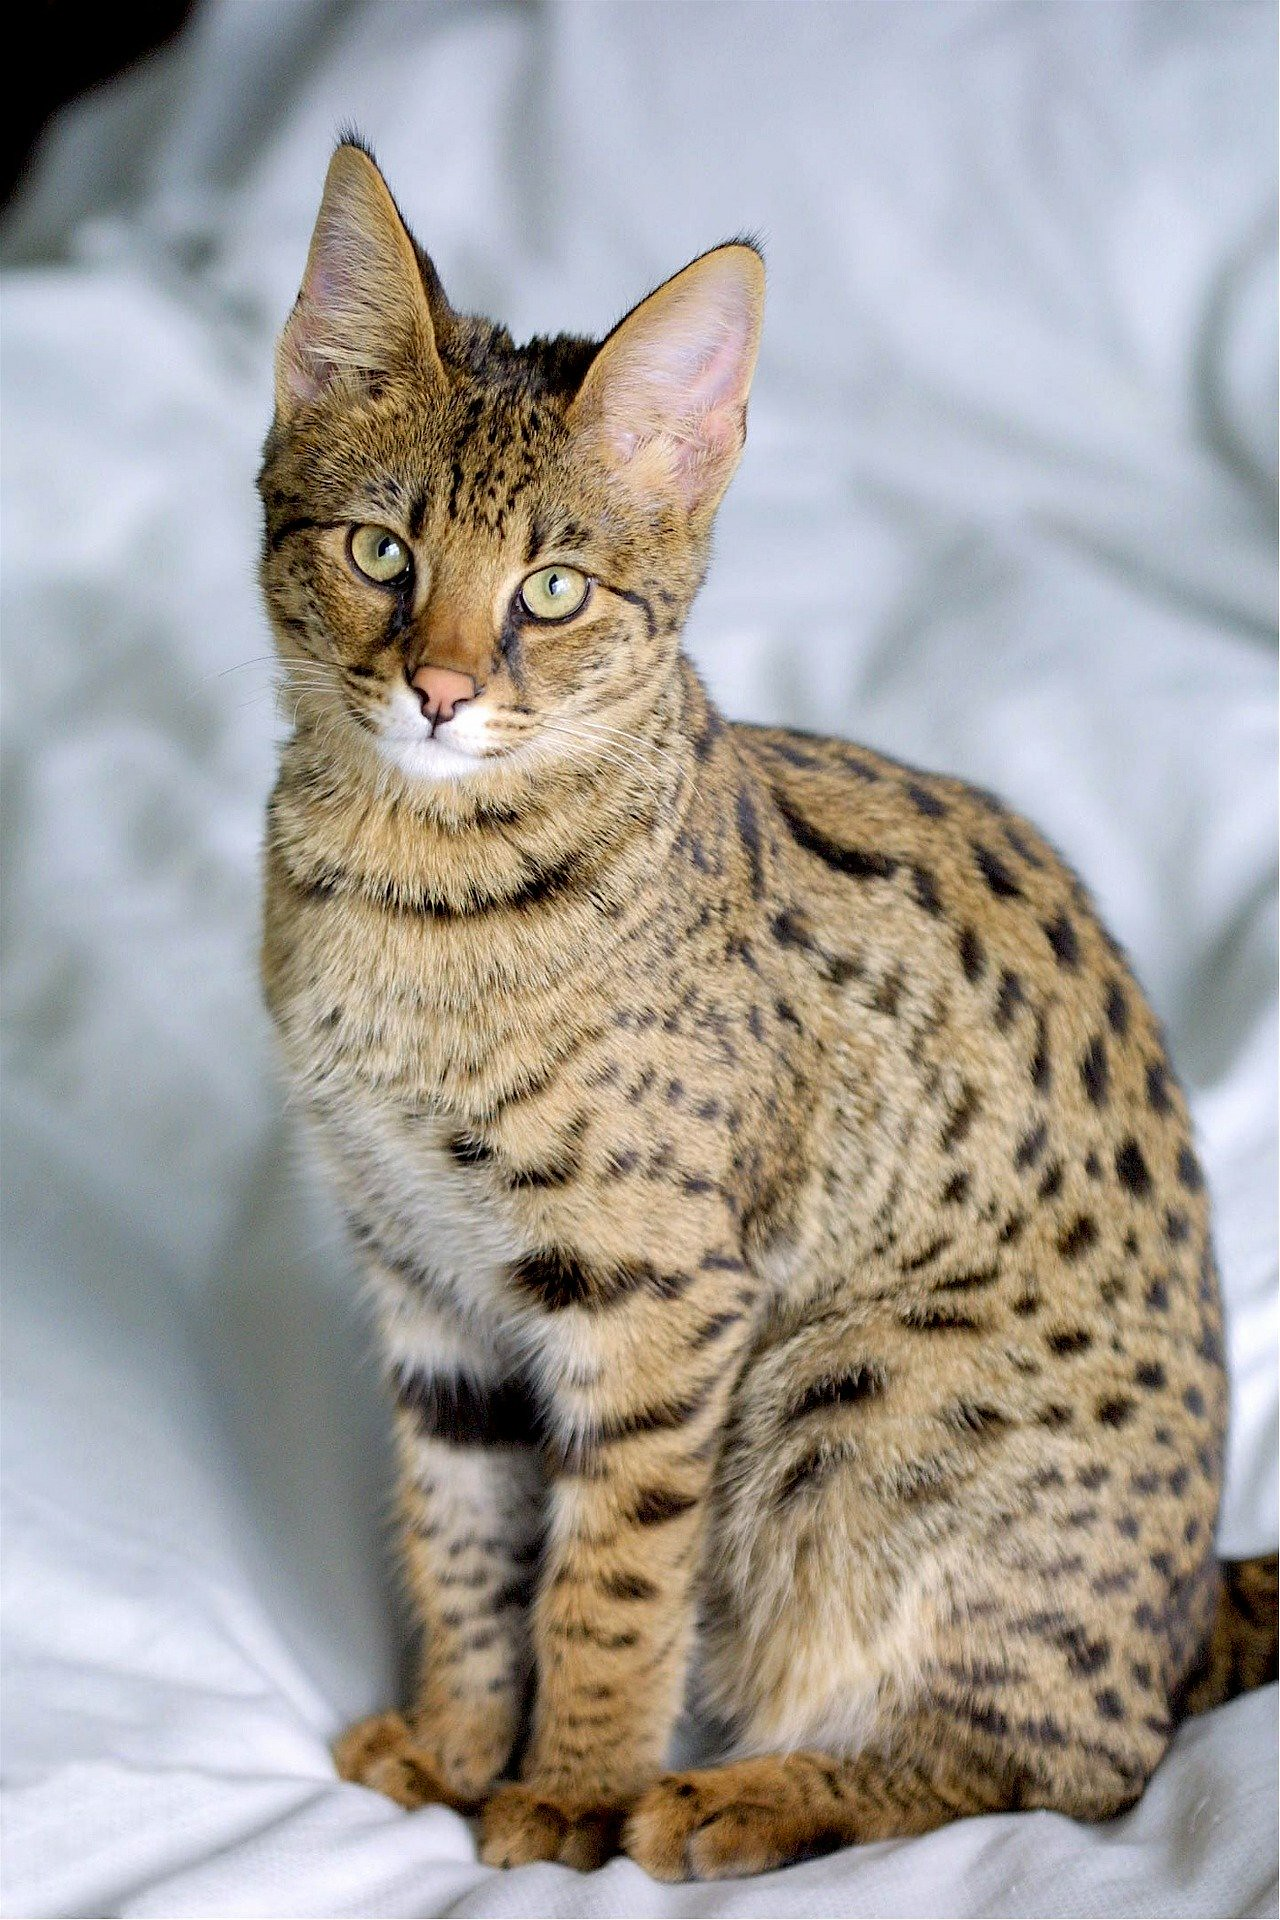 Savannah cat standing on bed